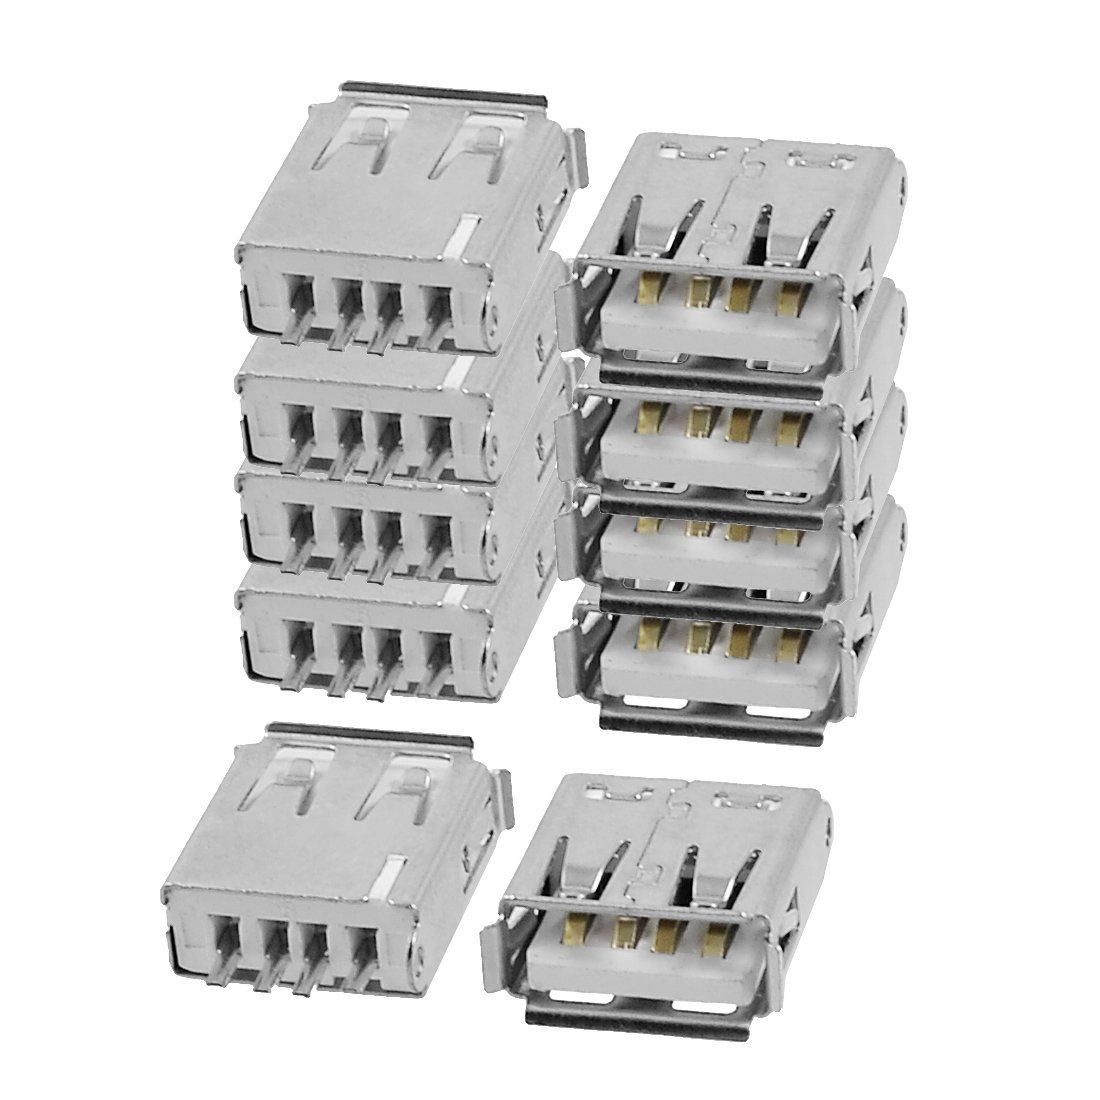 SuperWarehouse a12071400ux0008 Female Jack Connector Silver Tone Pack of 10 swh847921ca300121